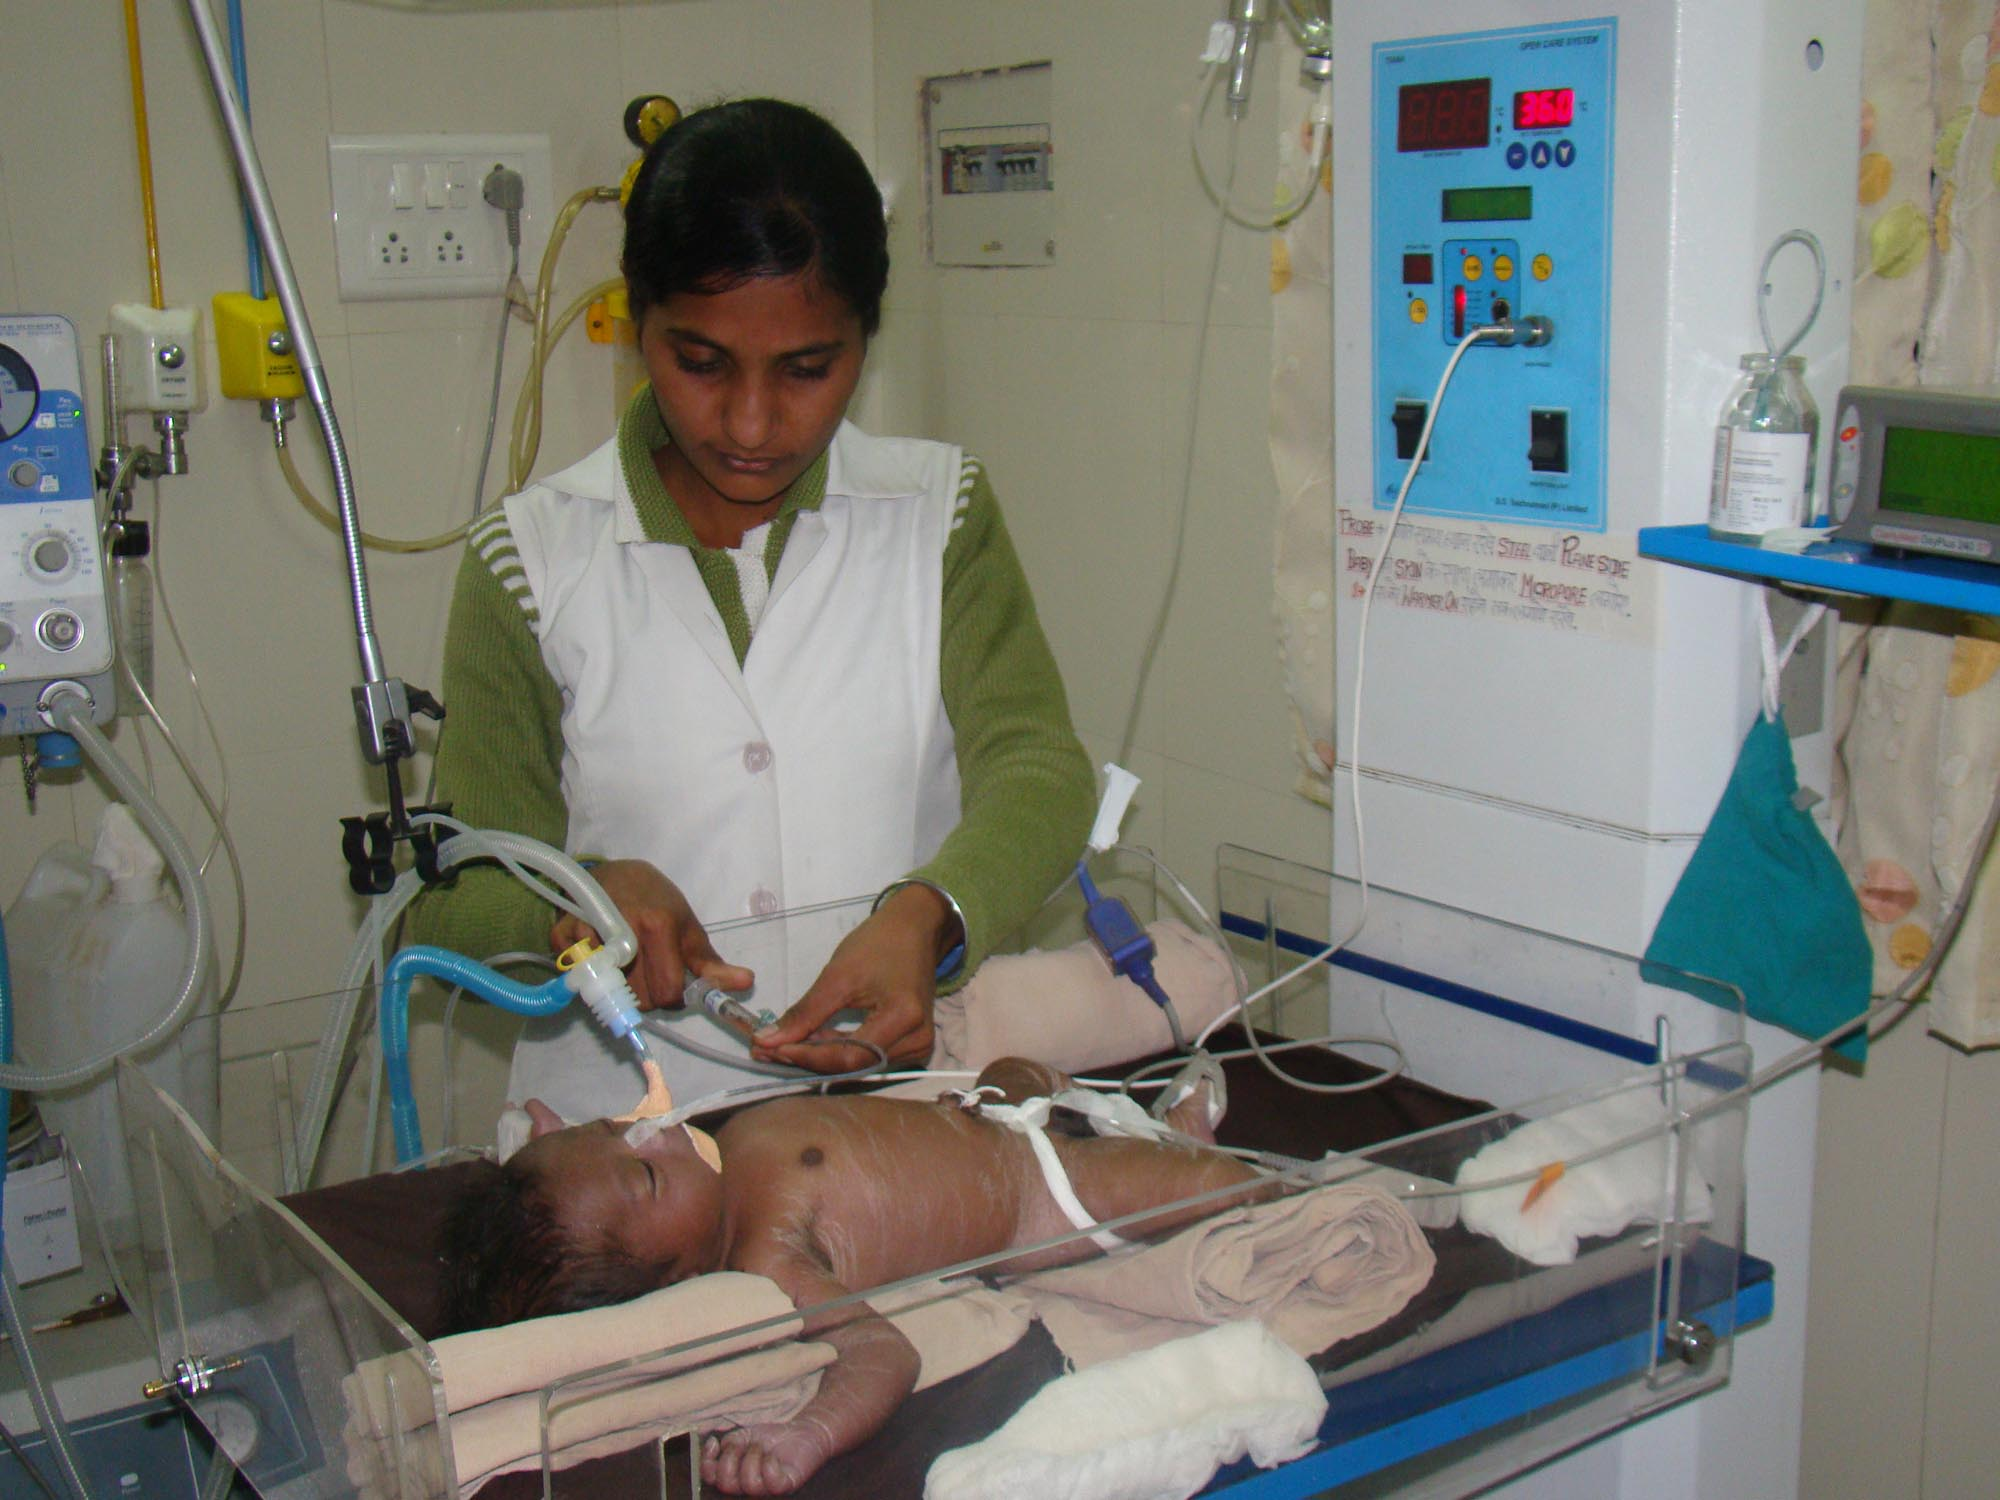 Infant in ICU